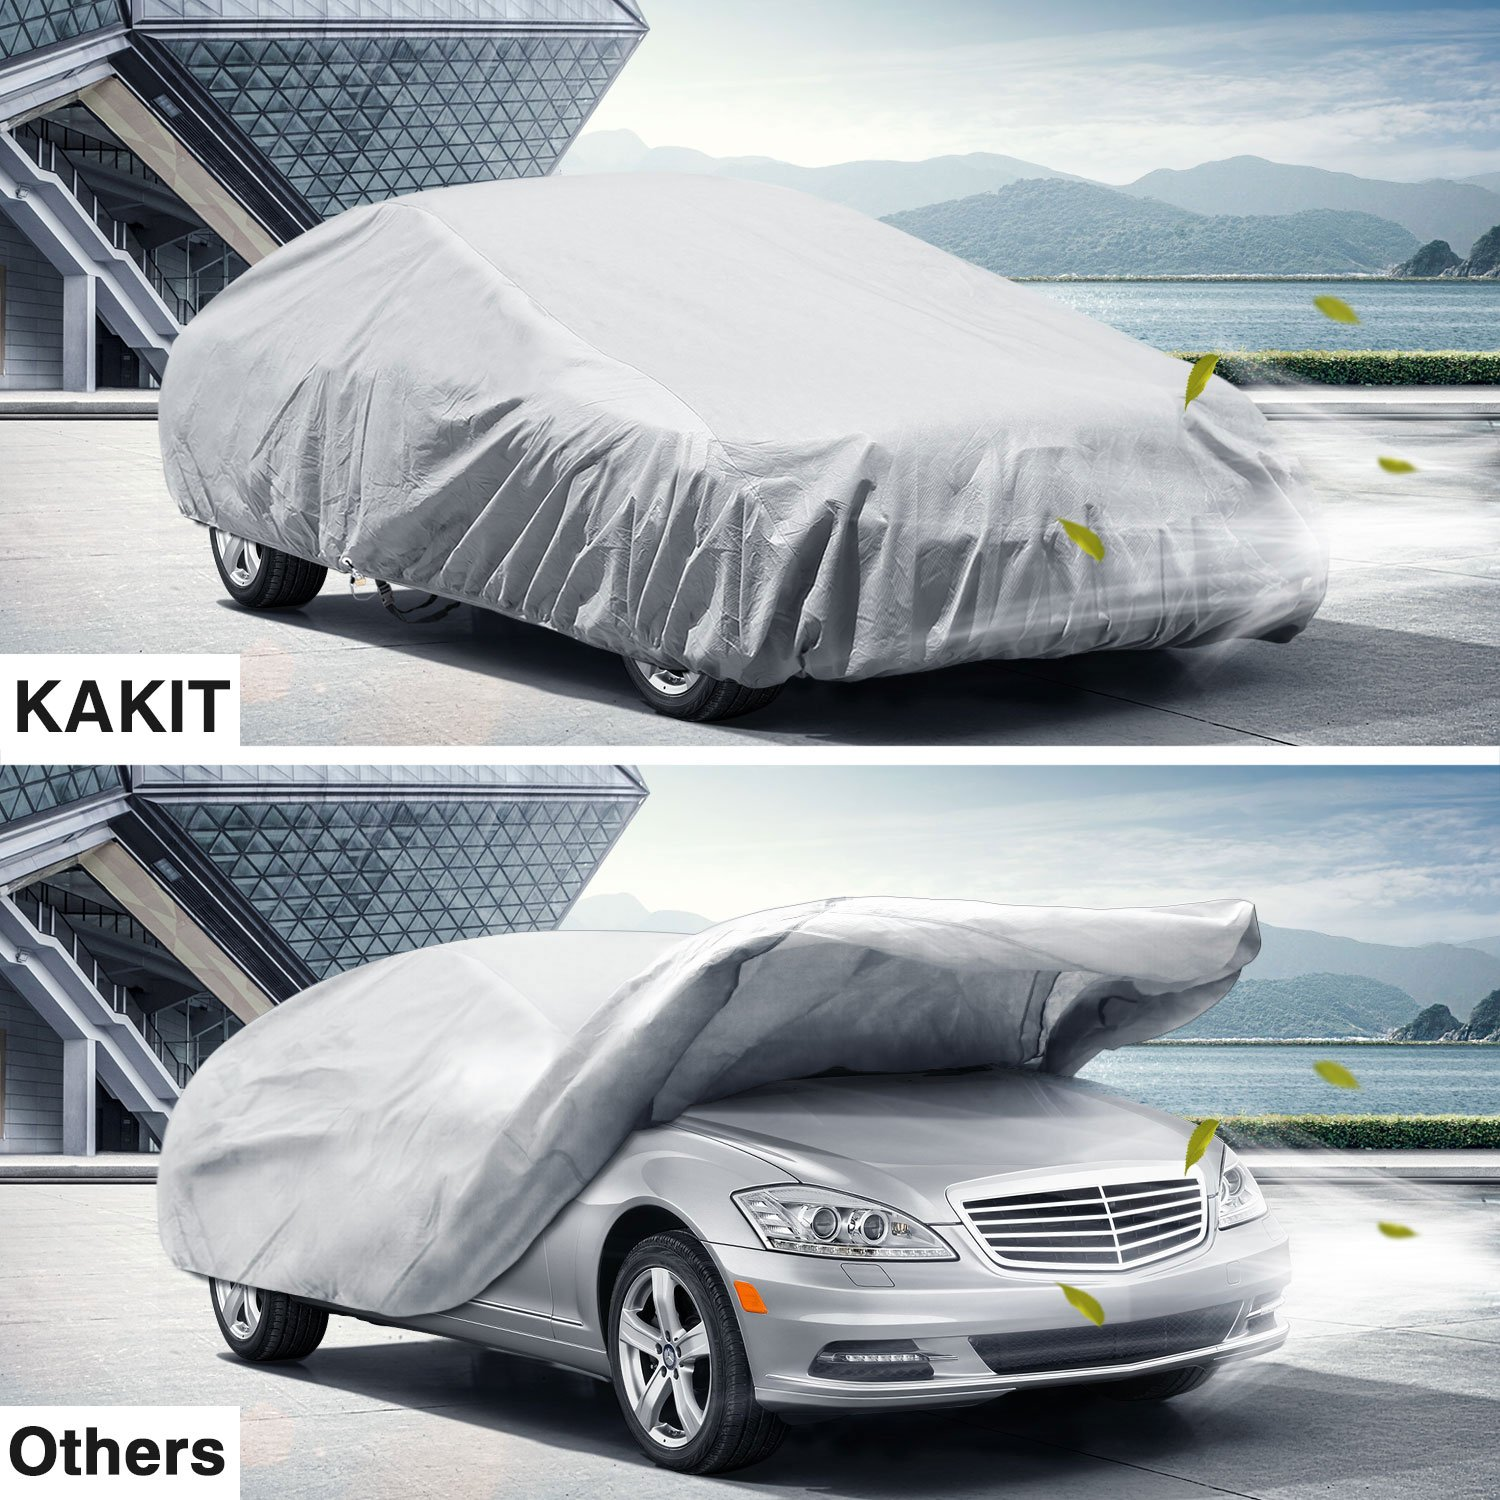 KAKIT All Weather Car Cover 6 Layers Breathable Sedan Cover 100/% Windproof Dustproof UV Protection Waterproof Glove Fit for Sedan up to 185